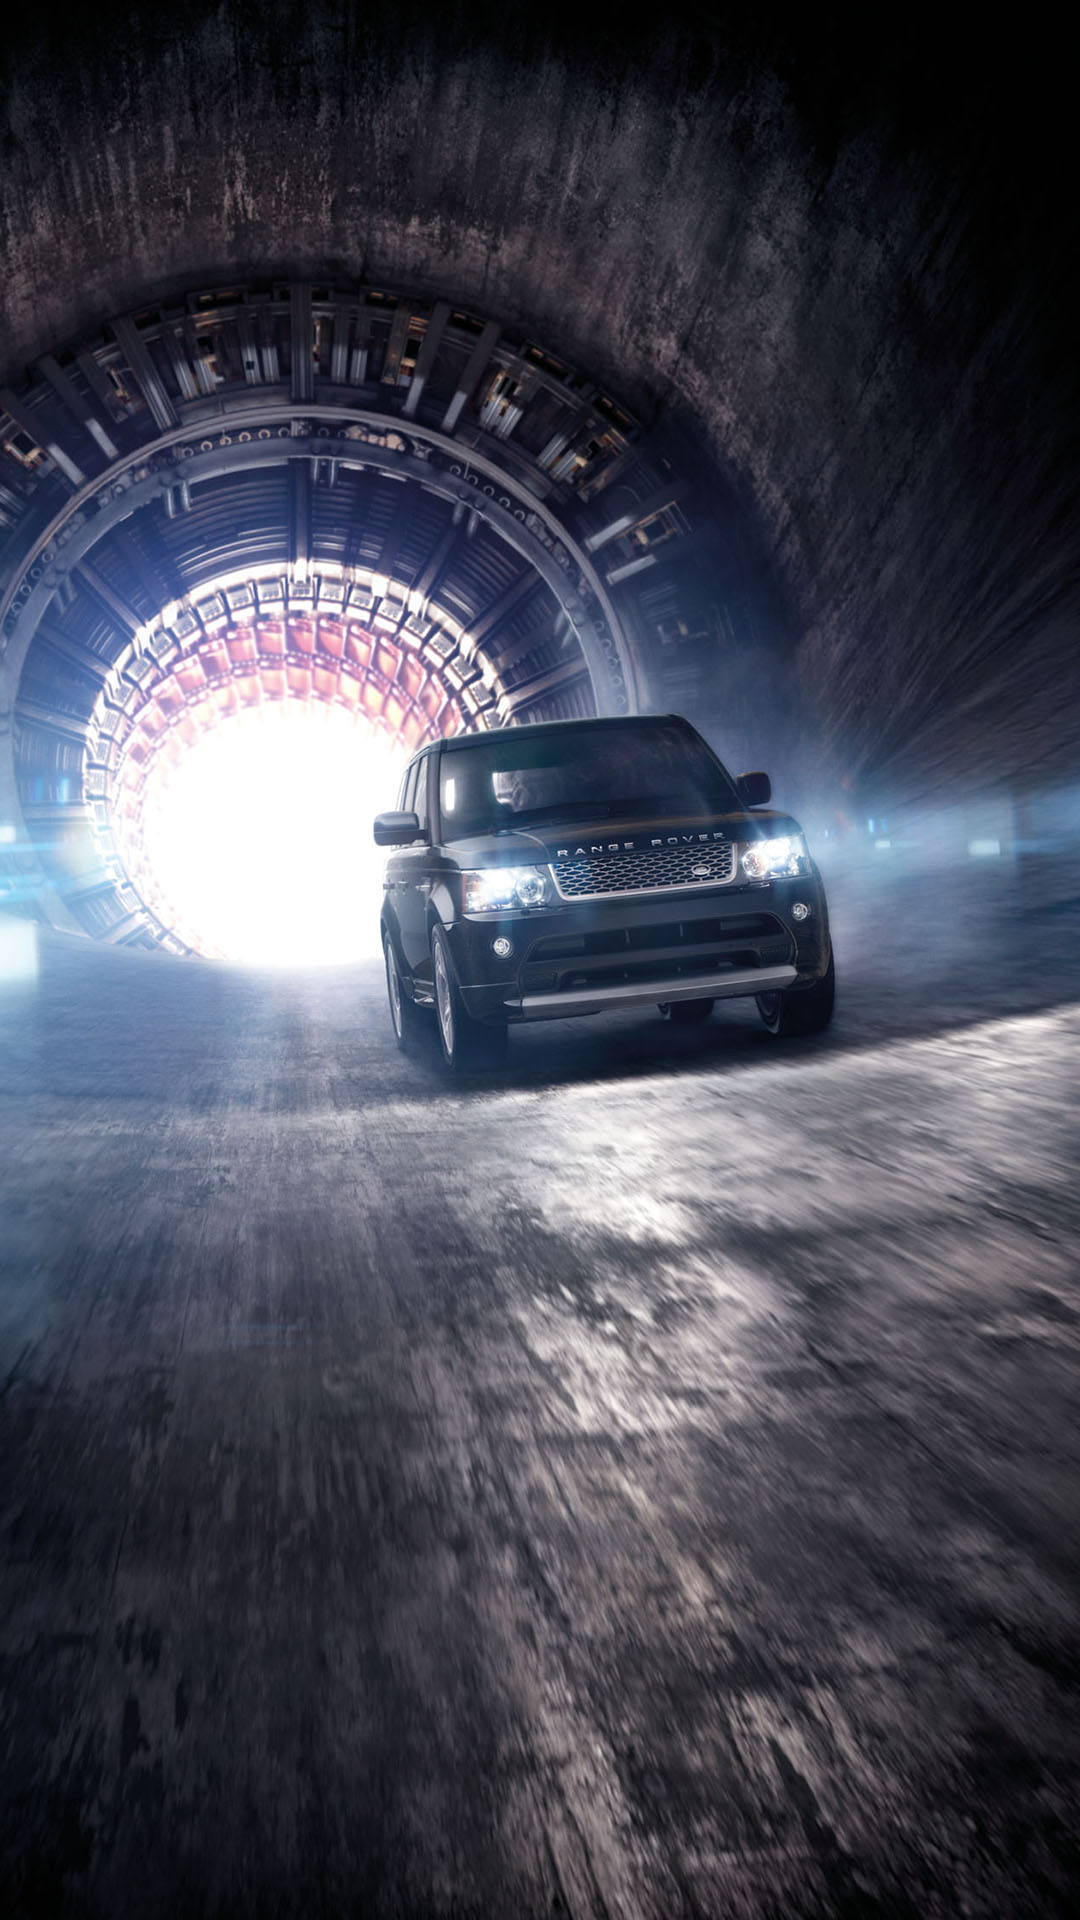 Range rover sport best htc one wallpapers free and easy to download range rover sport htc one wallpaper voltagebd Image collections